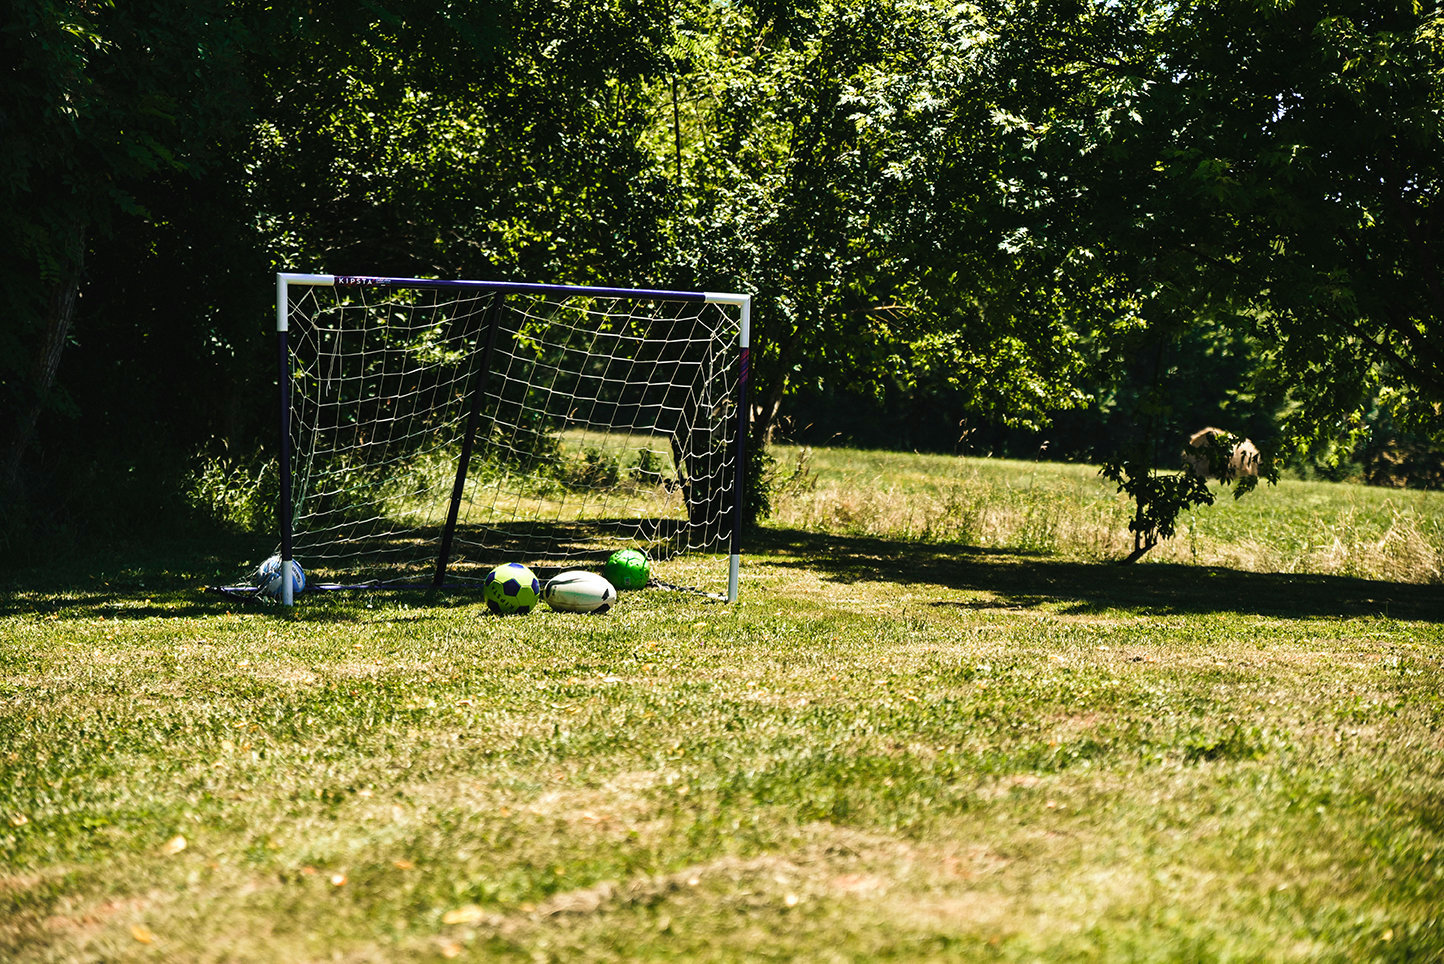 The Dordogne garden of a farmhouse rental location with a football goal backed by trees